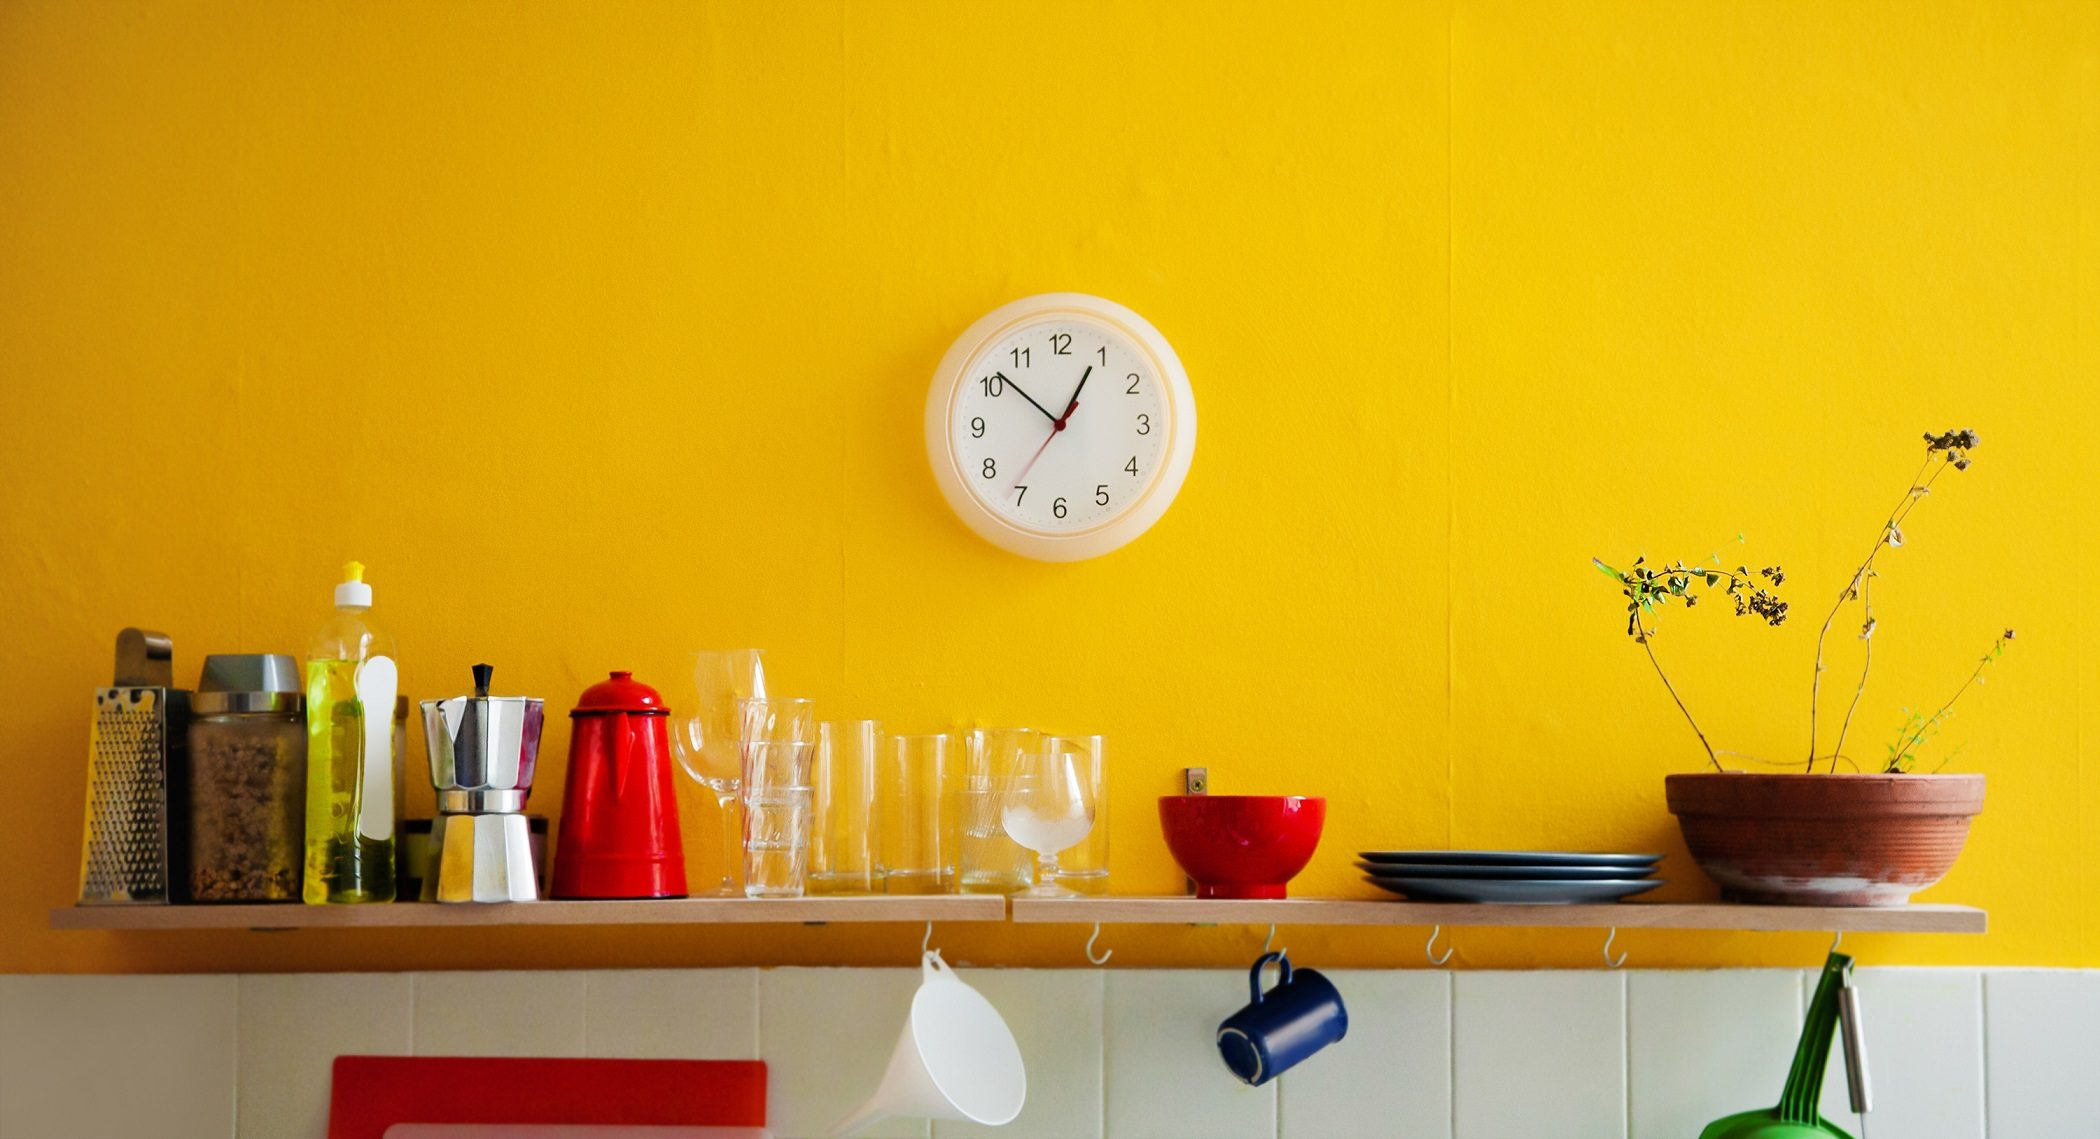 Yellow wall in kitchen with shelf and clock